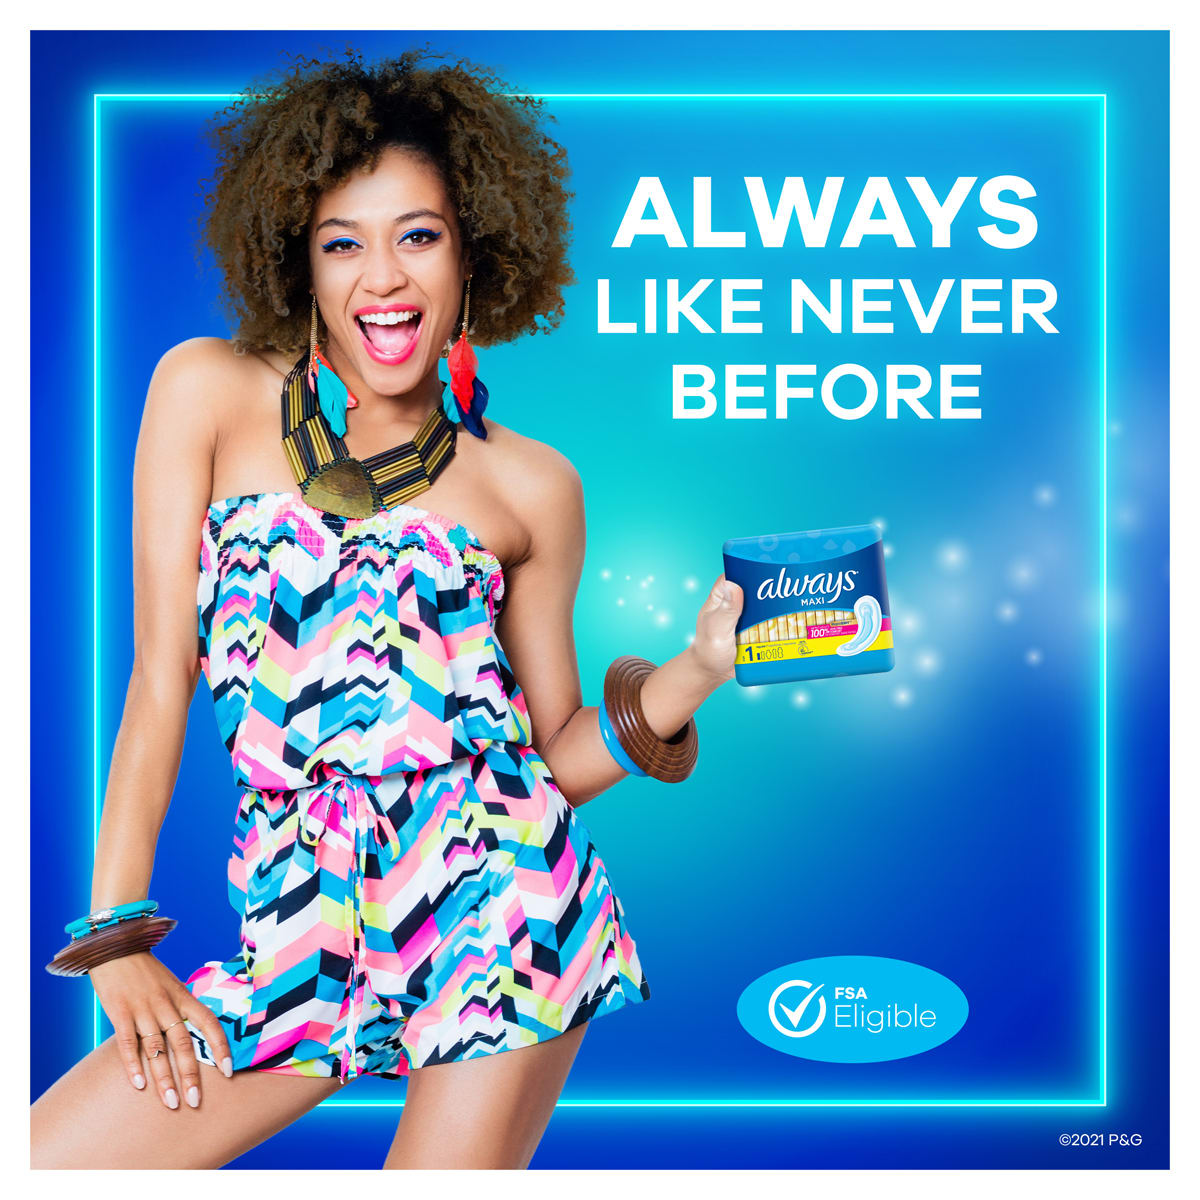 Always Maxi Size 1 Regular Pads Without Wings Unscented Girl